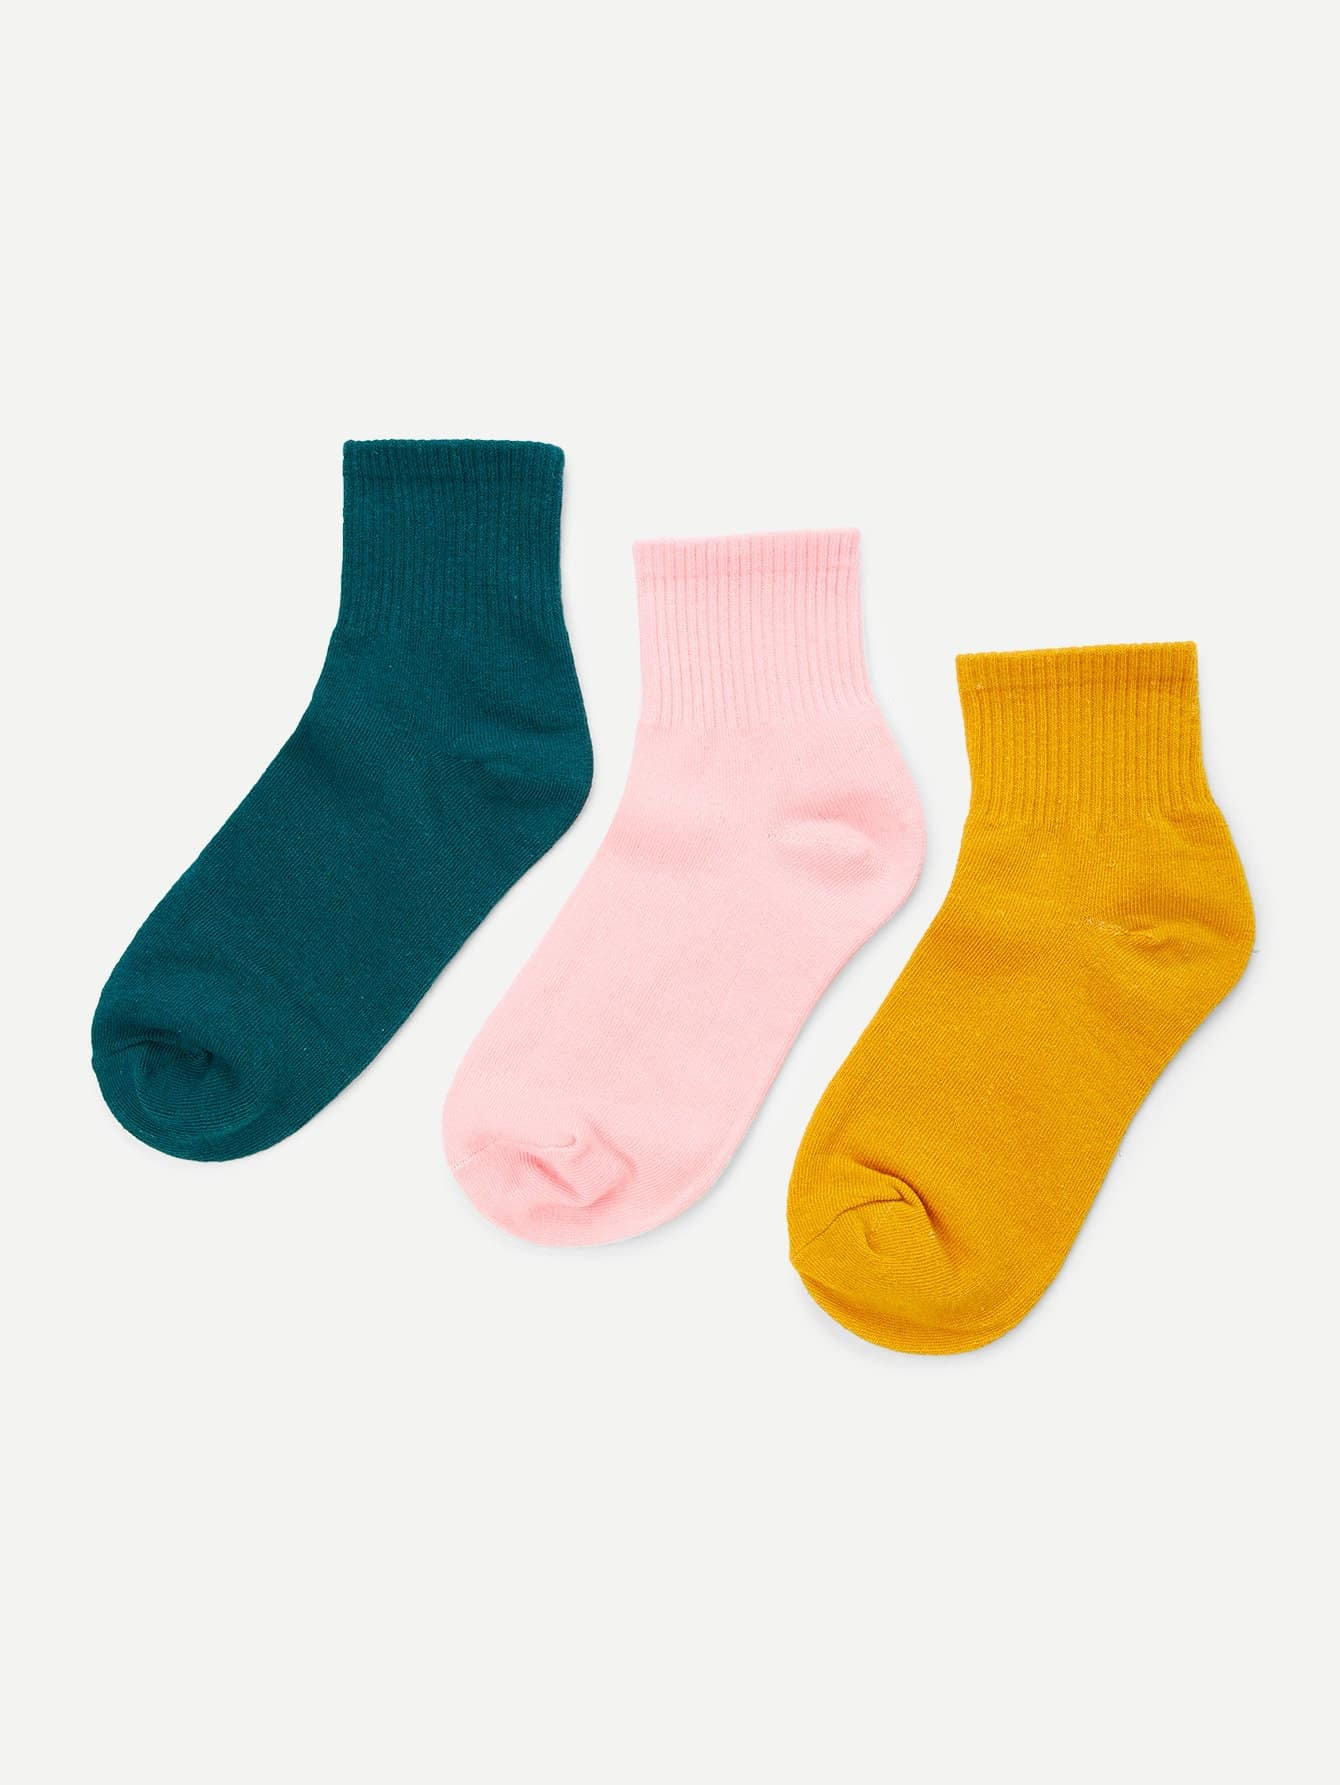 Cotton Ankle Socks 3Pairs